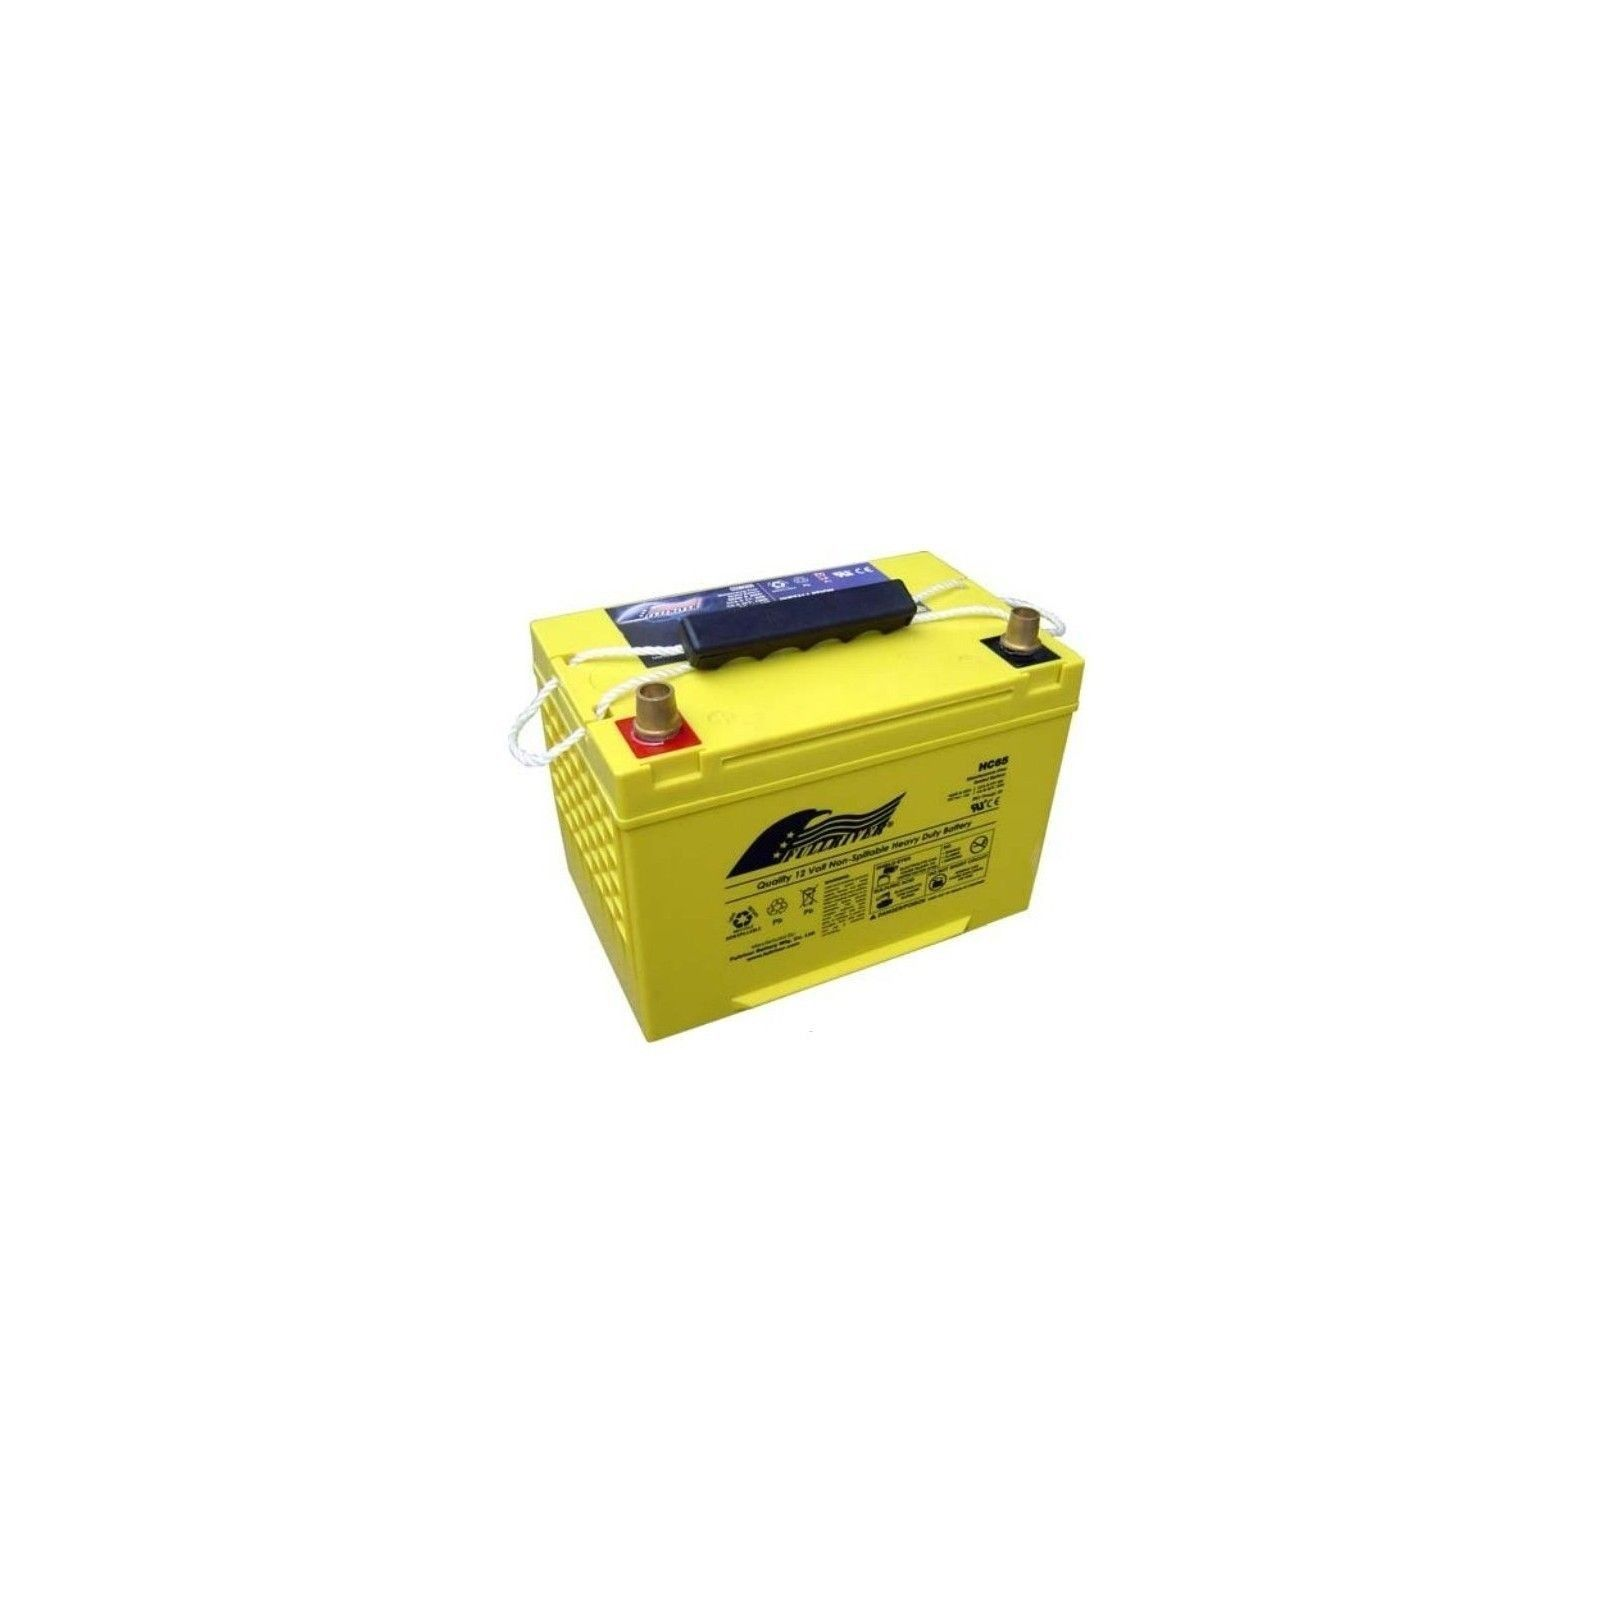 BATTERY VARTA G8 12V 95AH 830A  - 1